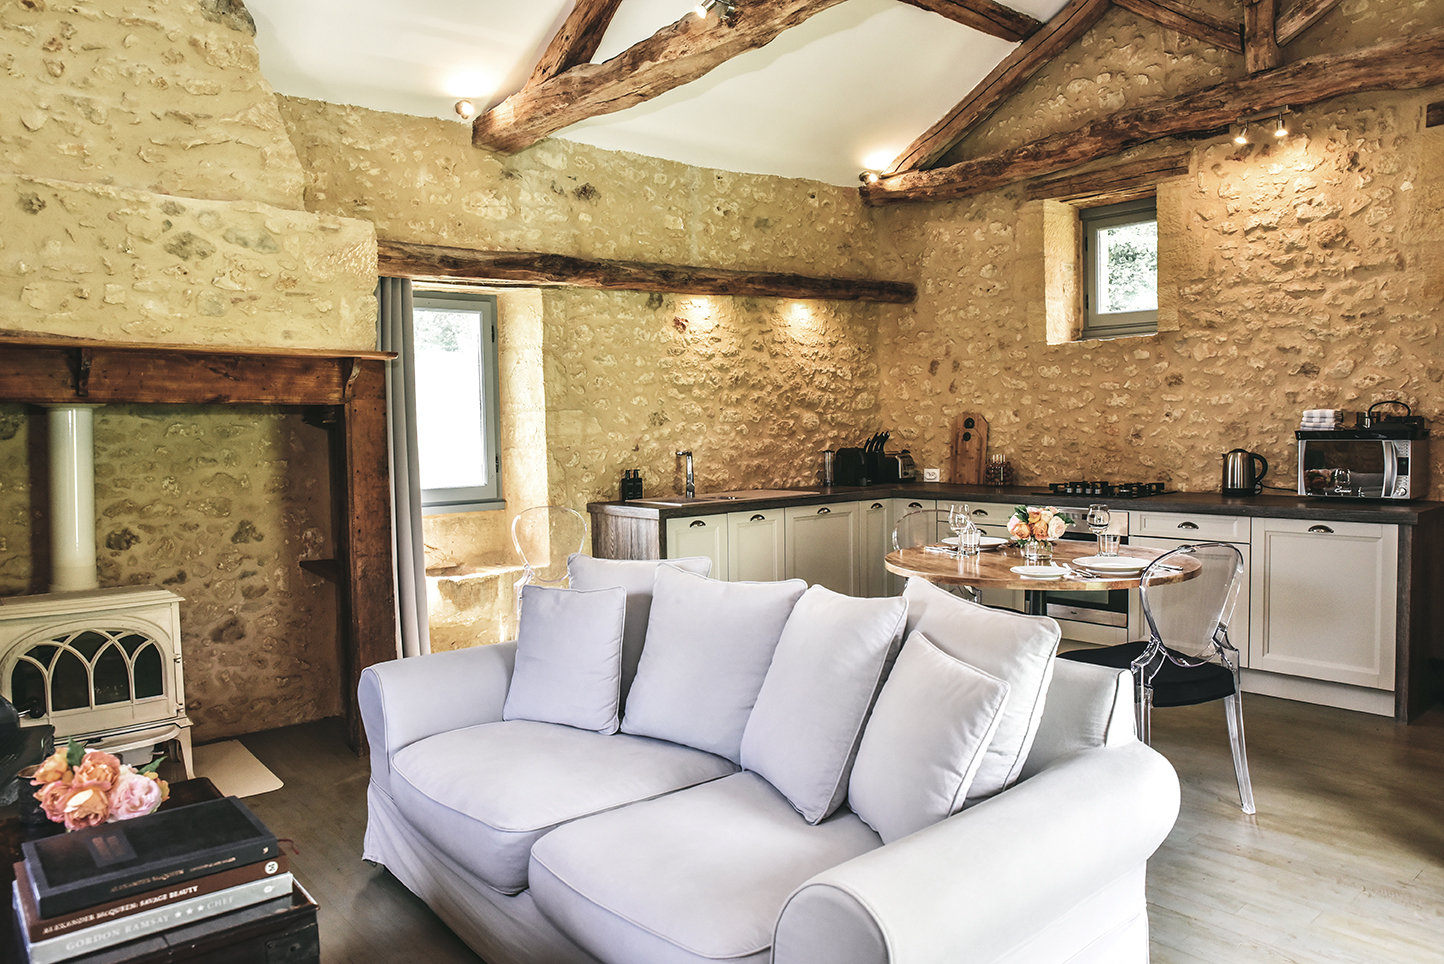 The sitting room and kitchen of Le Mazet, a rental cottage in the Dordogne